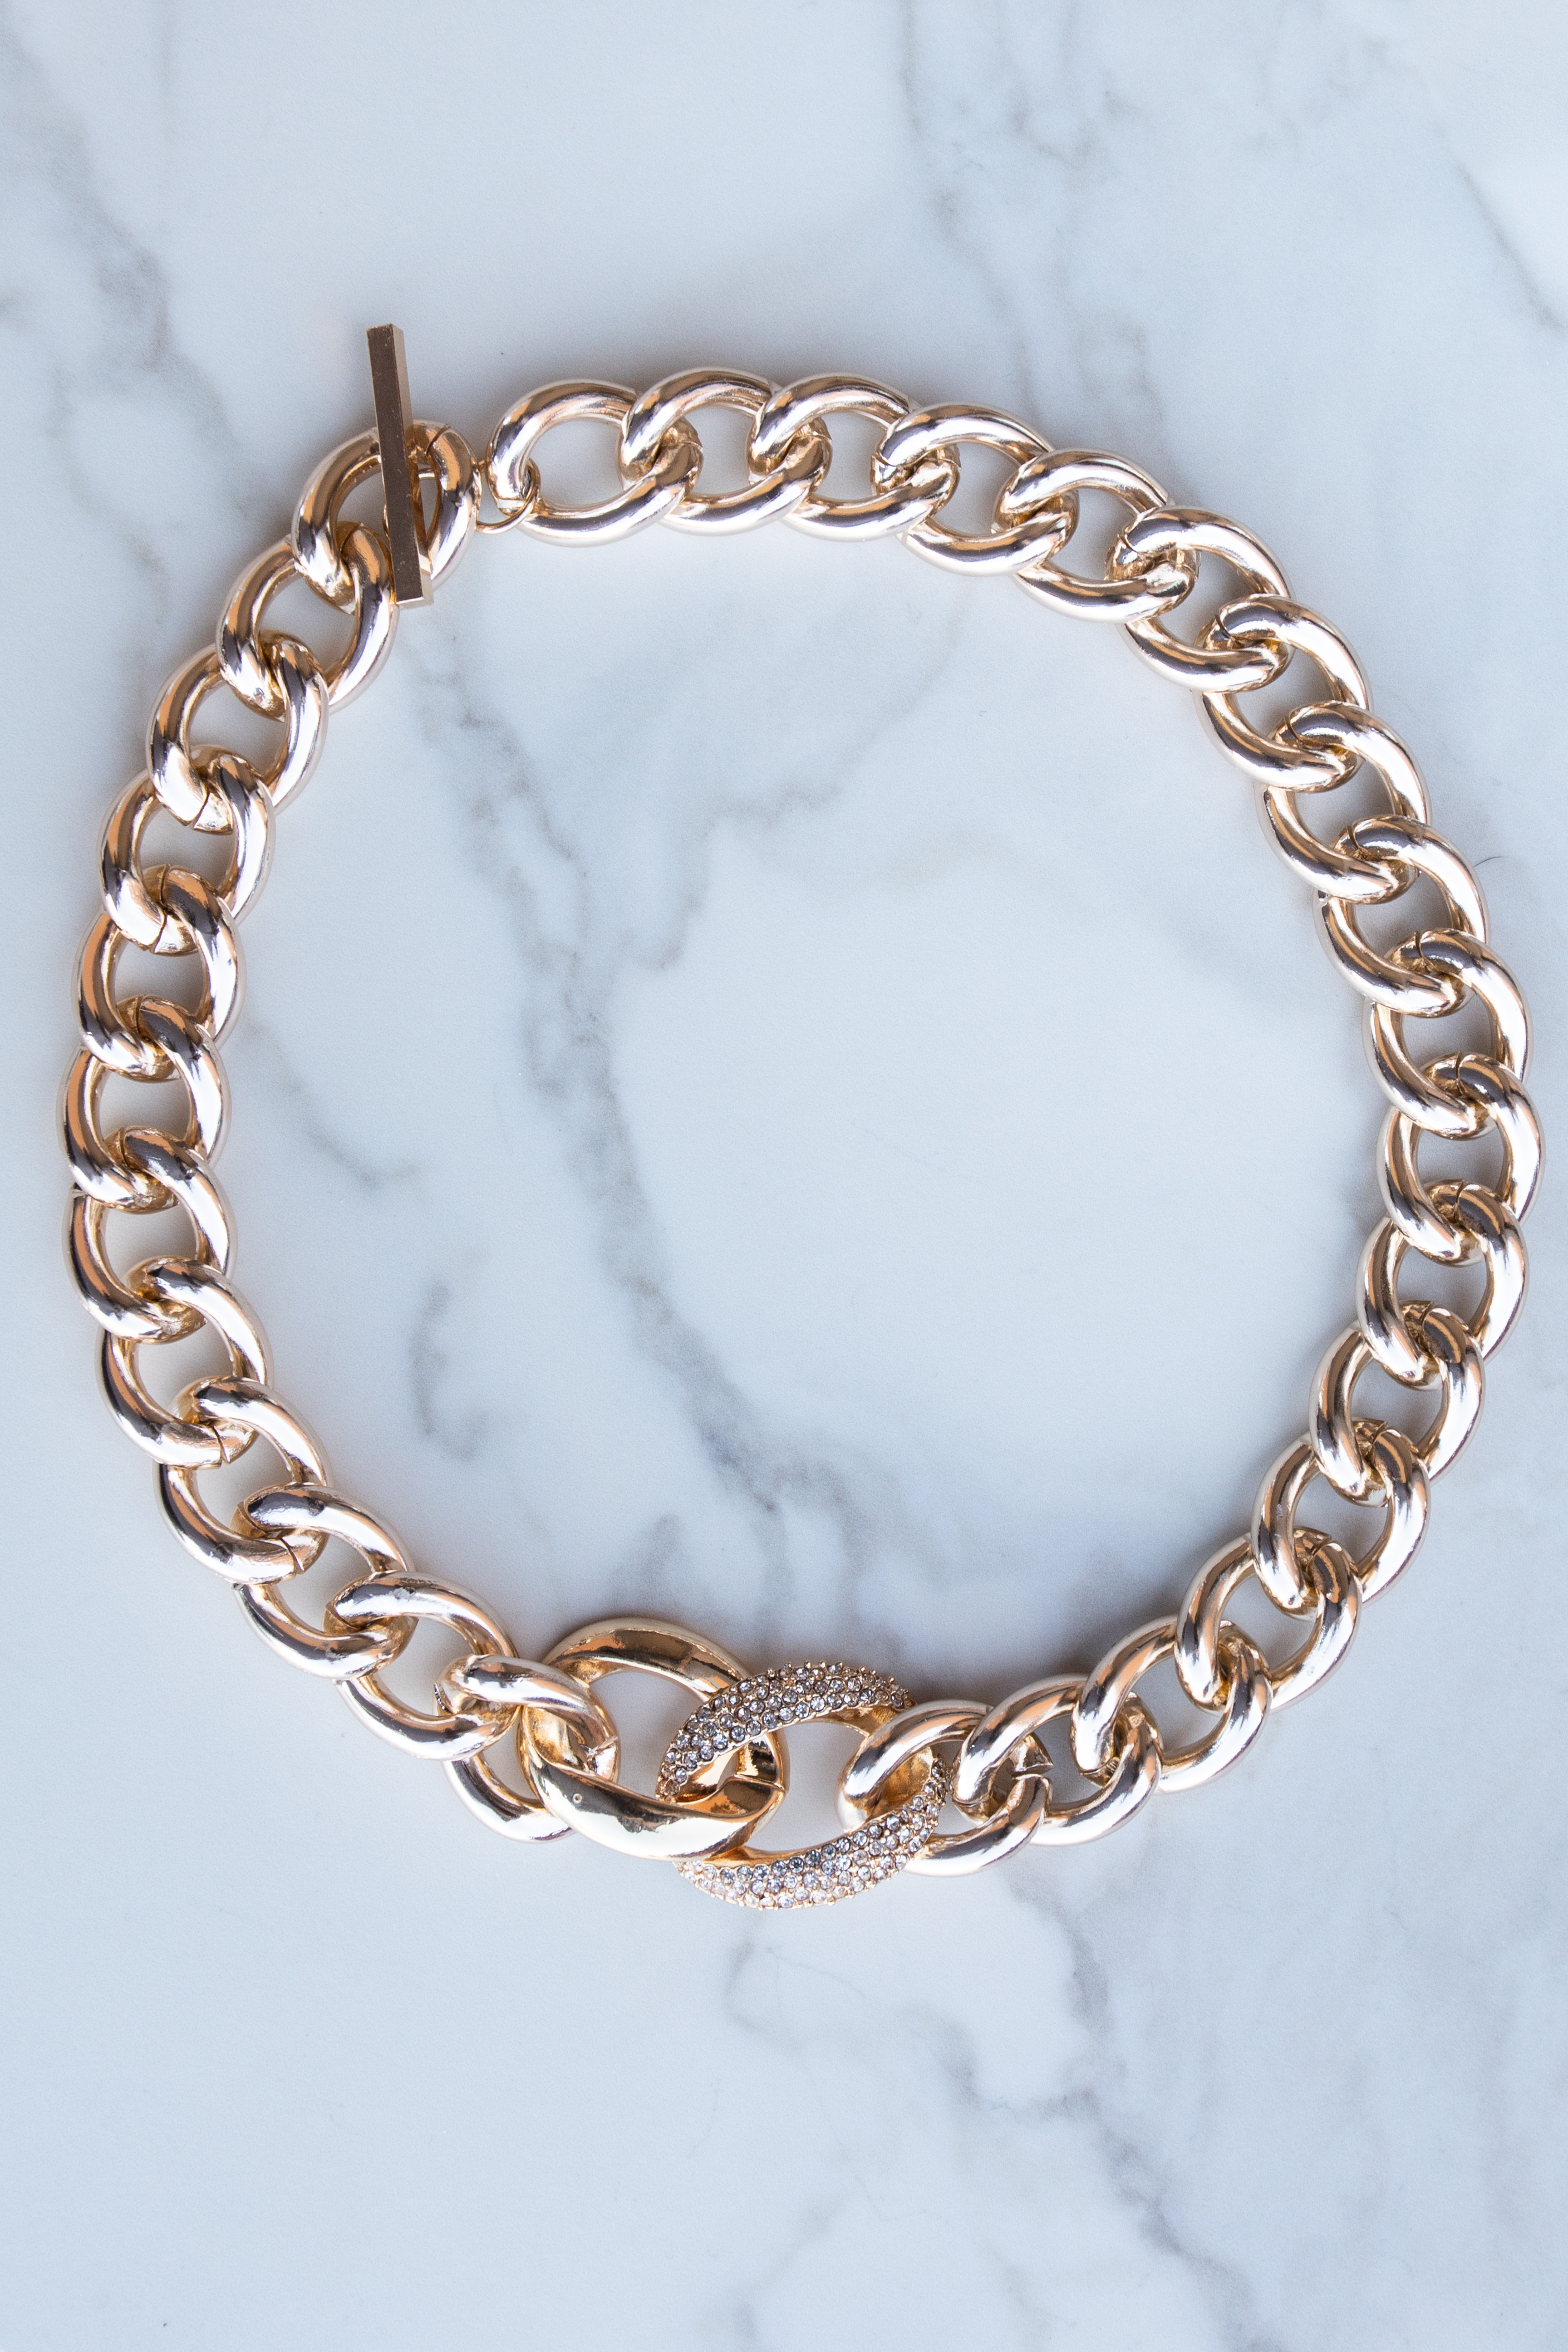 Gold Thick Chain Choker Necklace with Rhinestone Link Detail